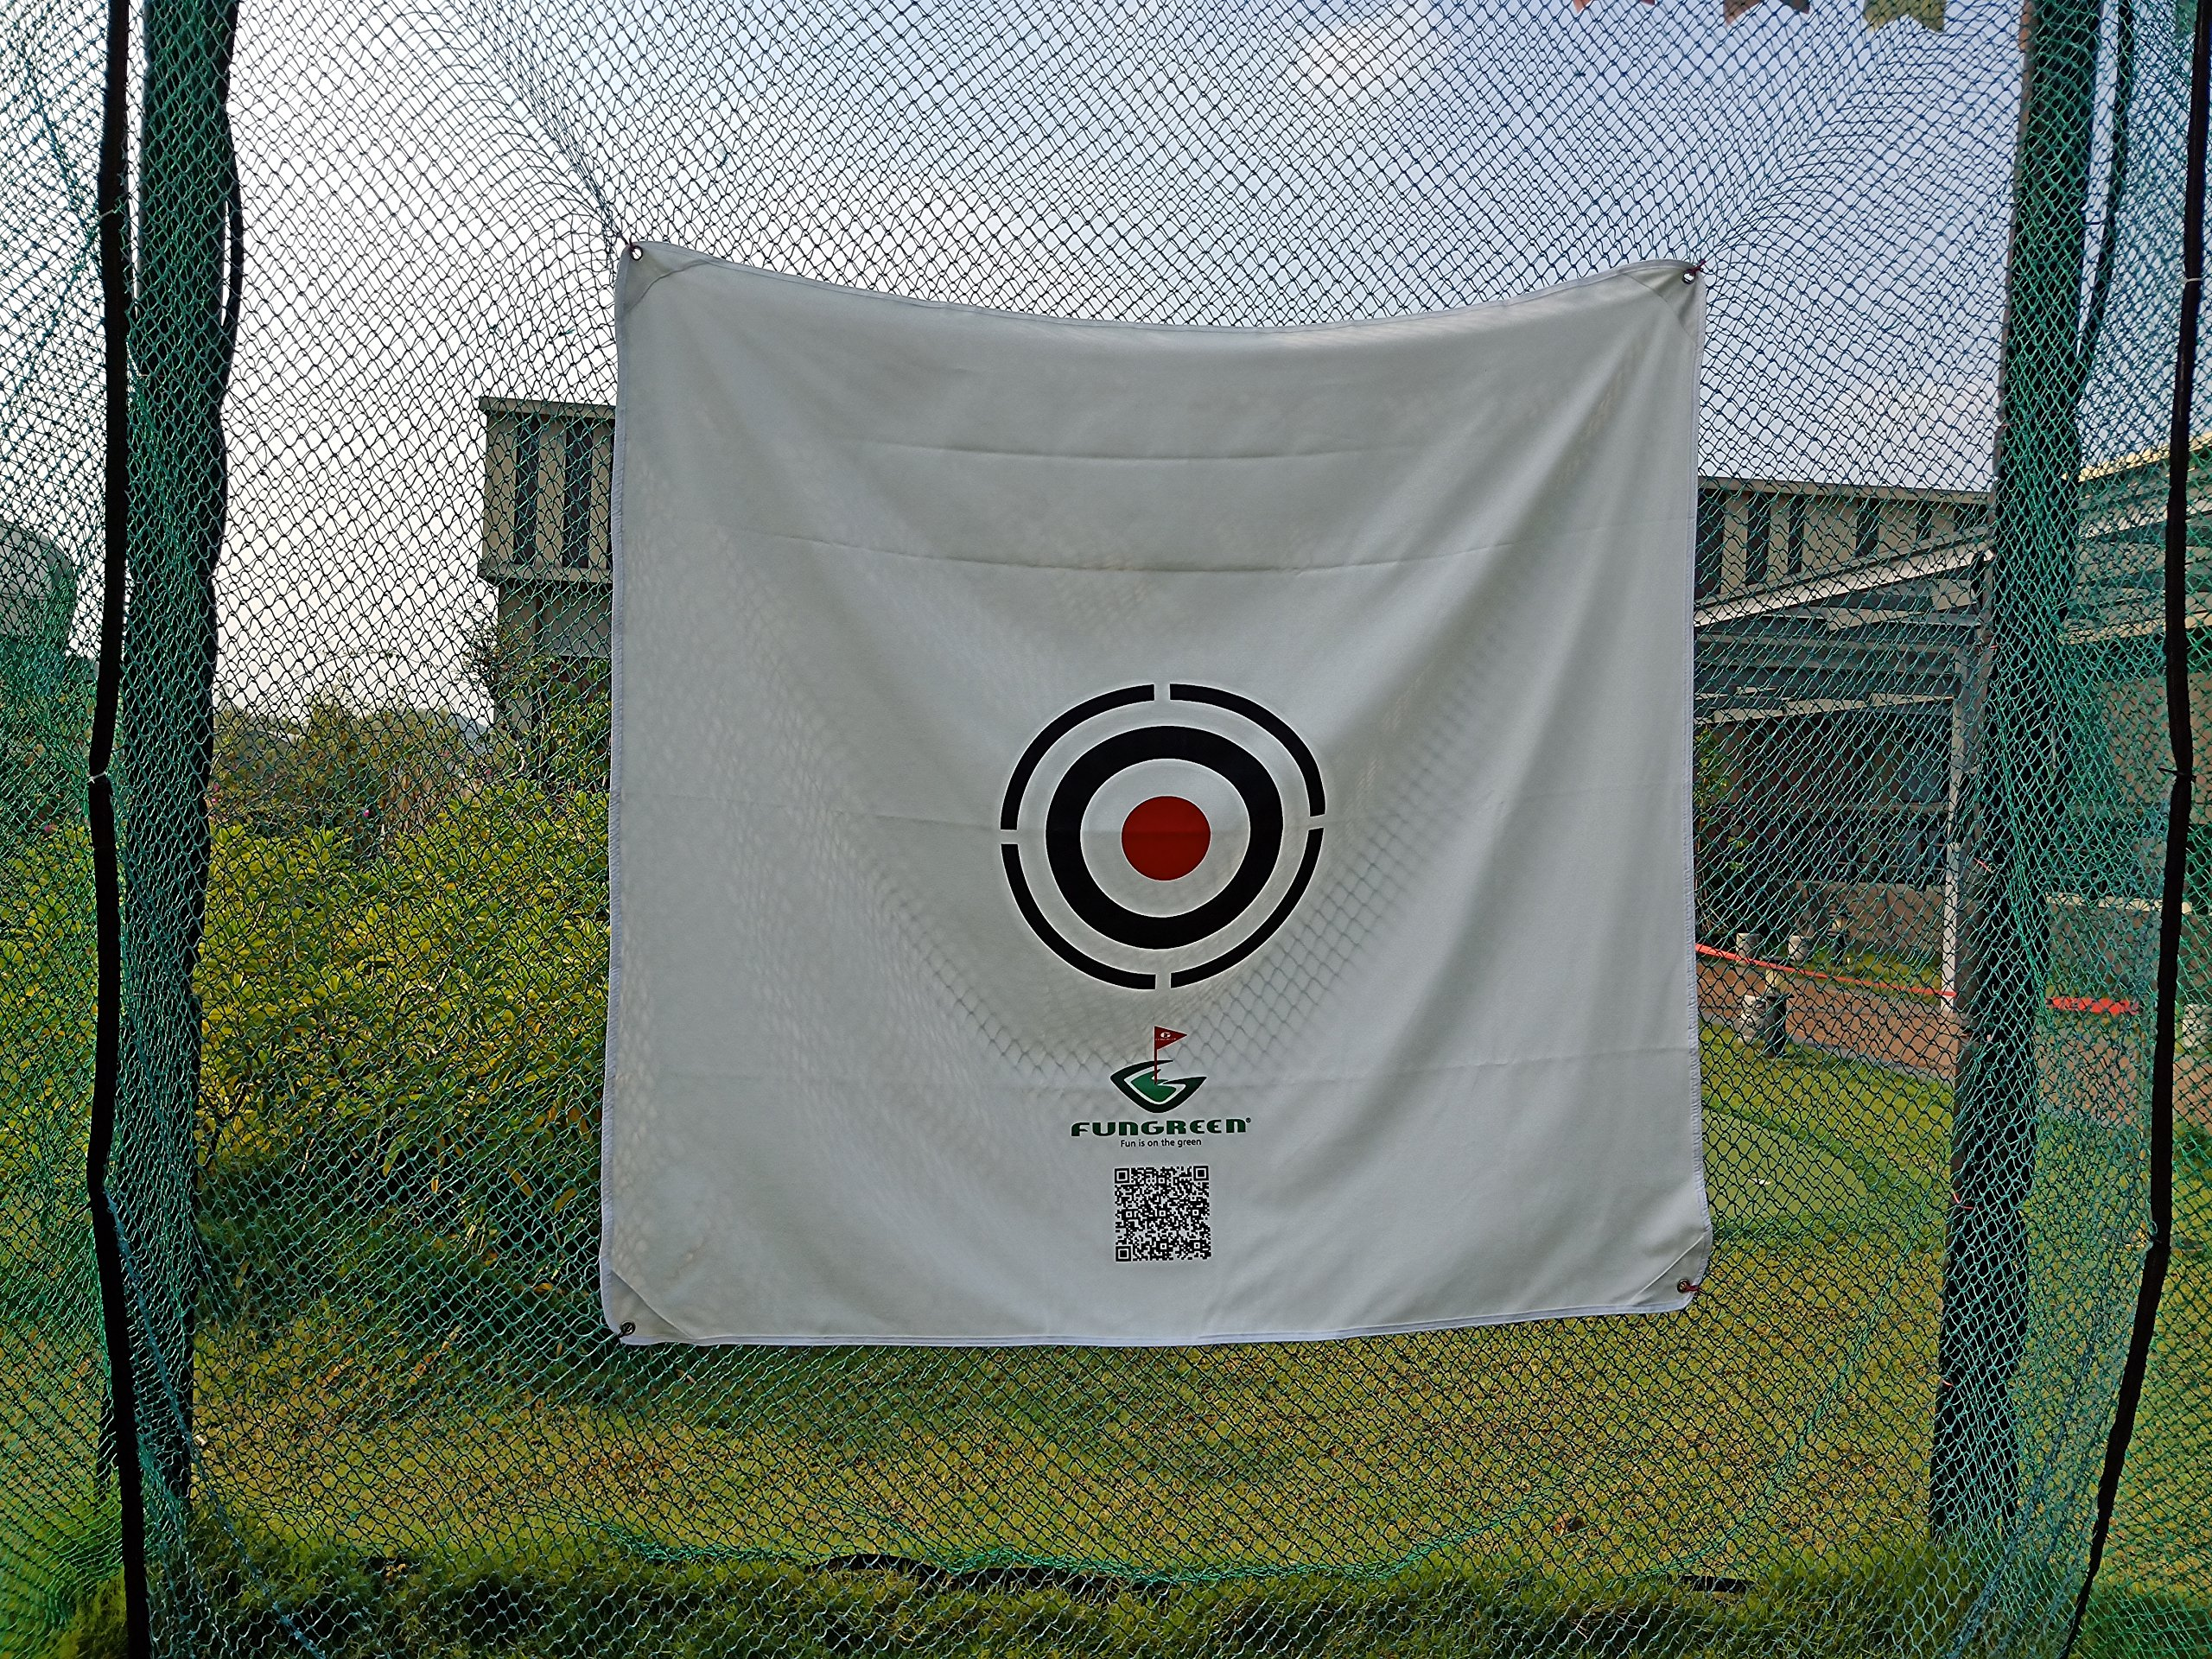 FUNGREEN 1.5Mx1.5M Golf Hitting Target Cloth for Golf Practice Indoor Training Outdoor Court Hitting Cloth Golf Accessories by FUNGREEN (Image #3)